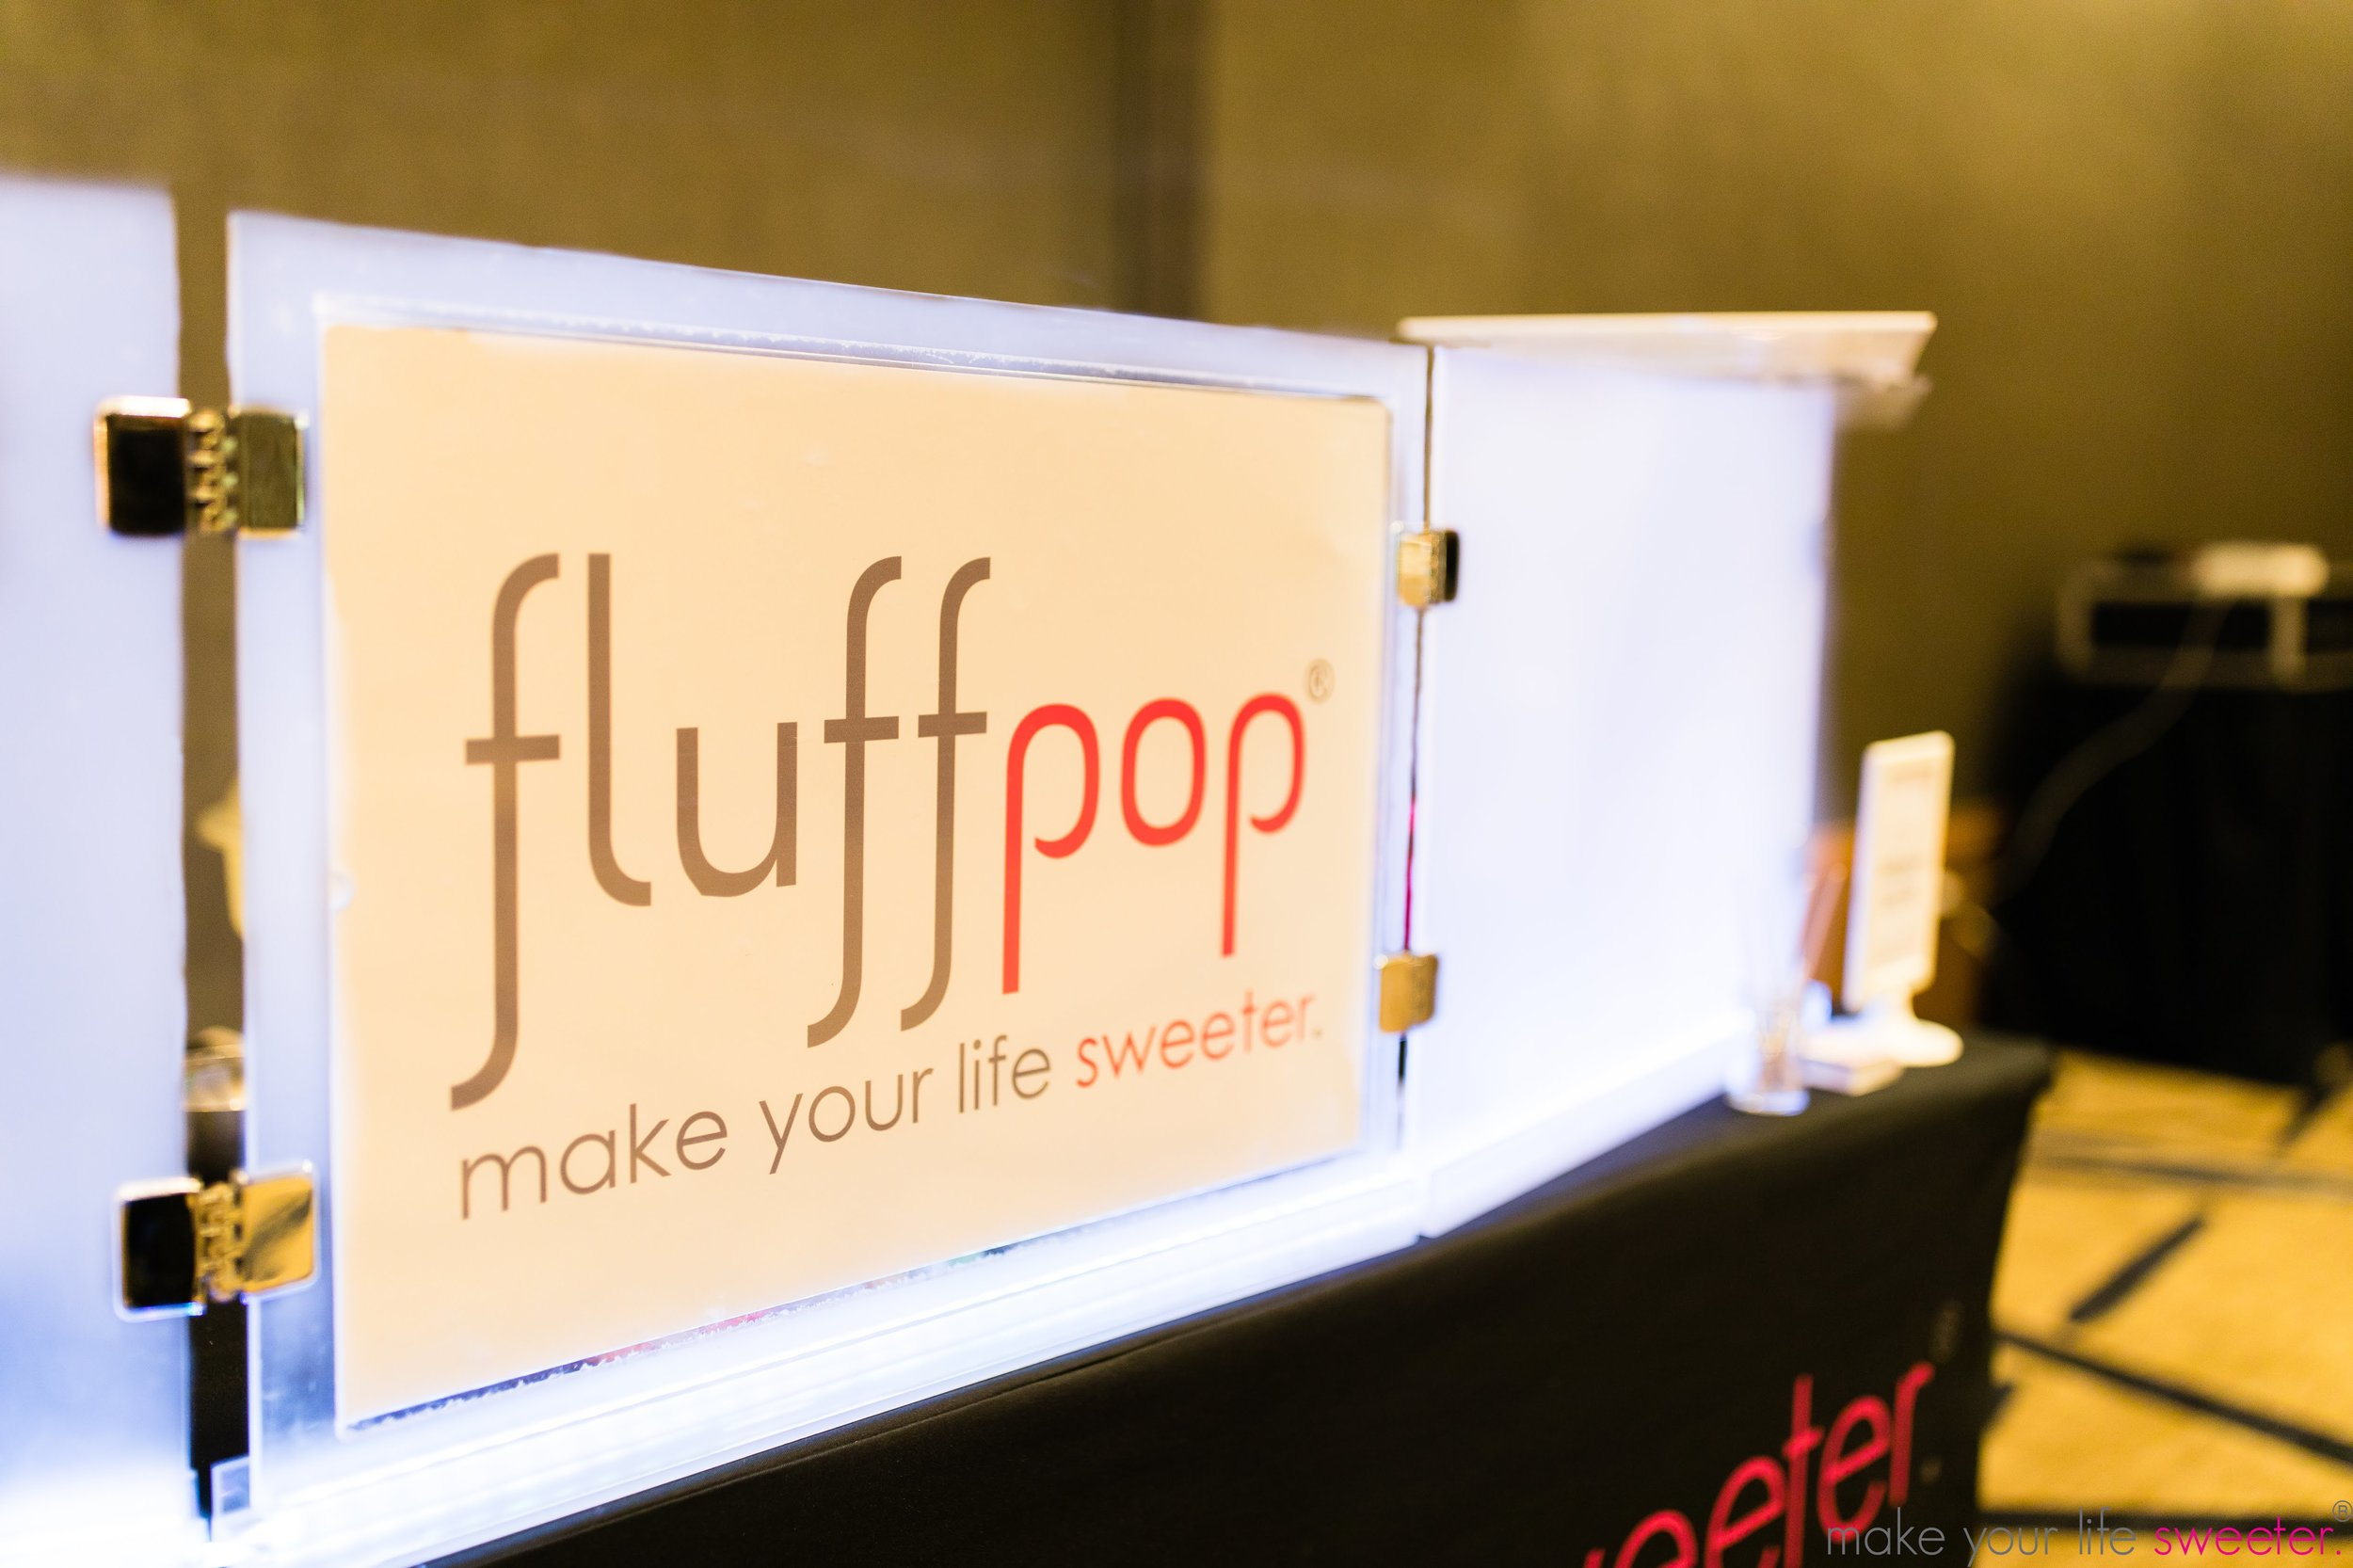 Fluffpop artisanal miniature gourmet cotton candy - L'Oréal VIP Insiders Events - Make Your Life Sweeter Events